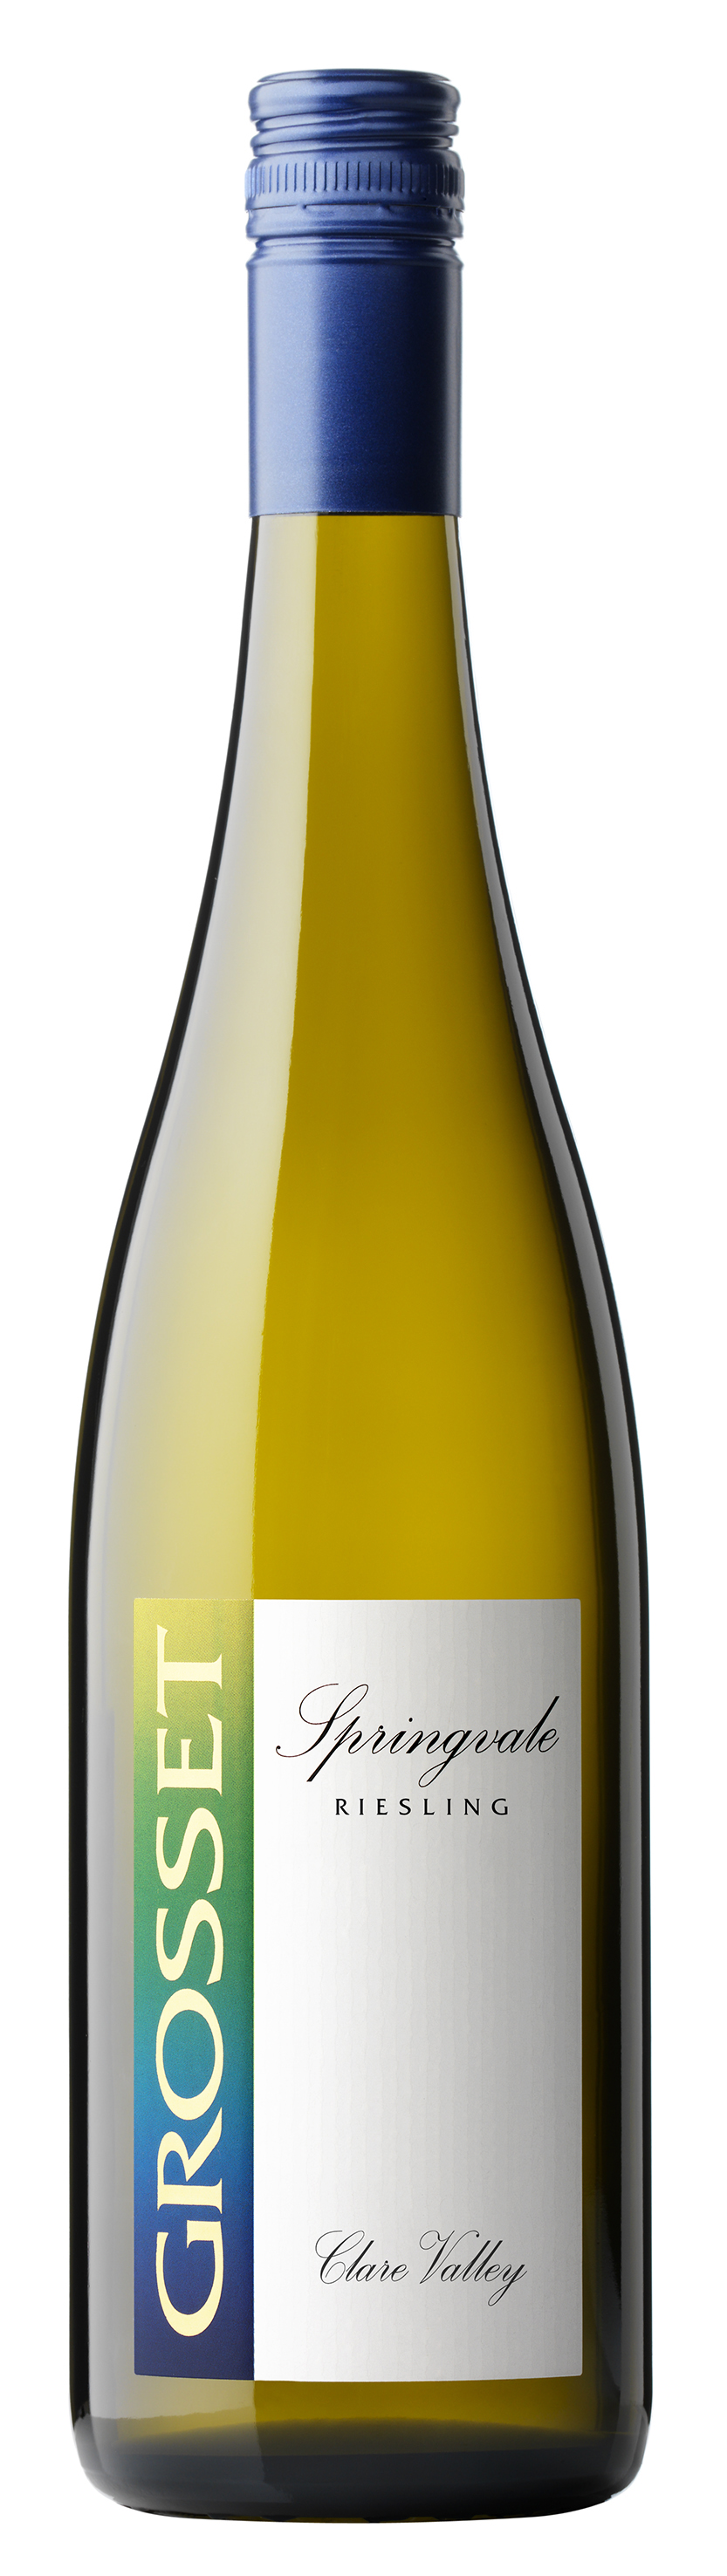 Grosset, 'Springvale' Clare Valley Riesling 2017